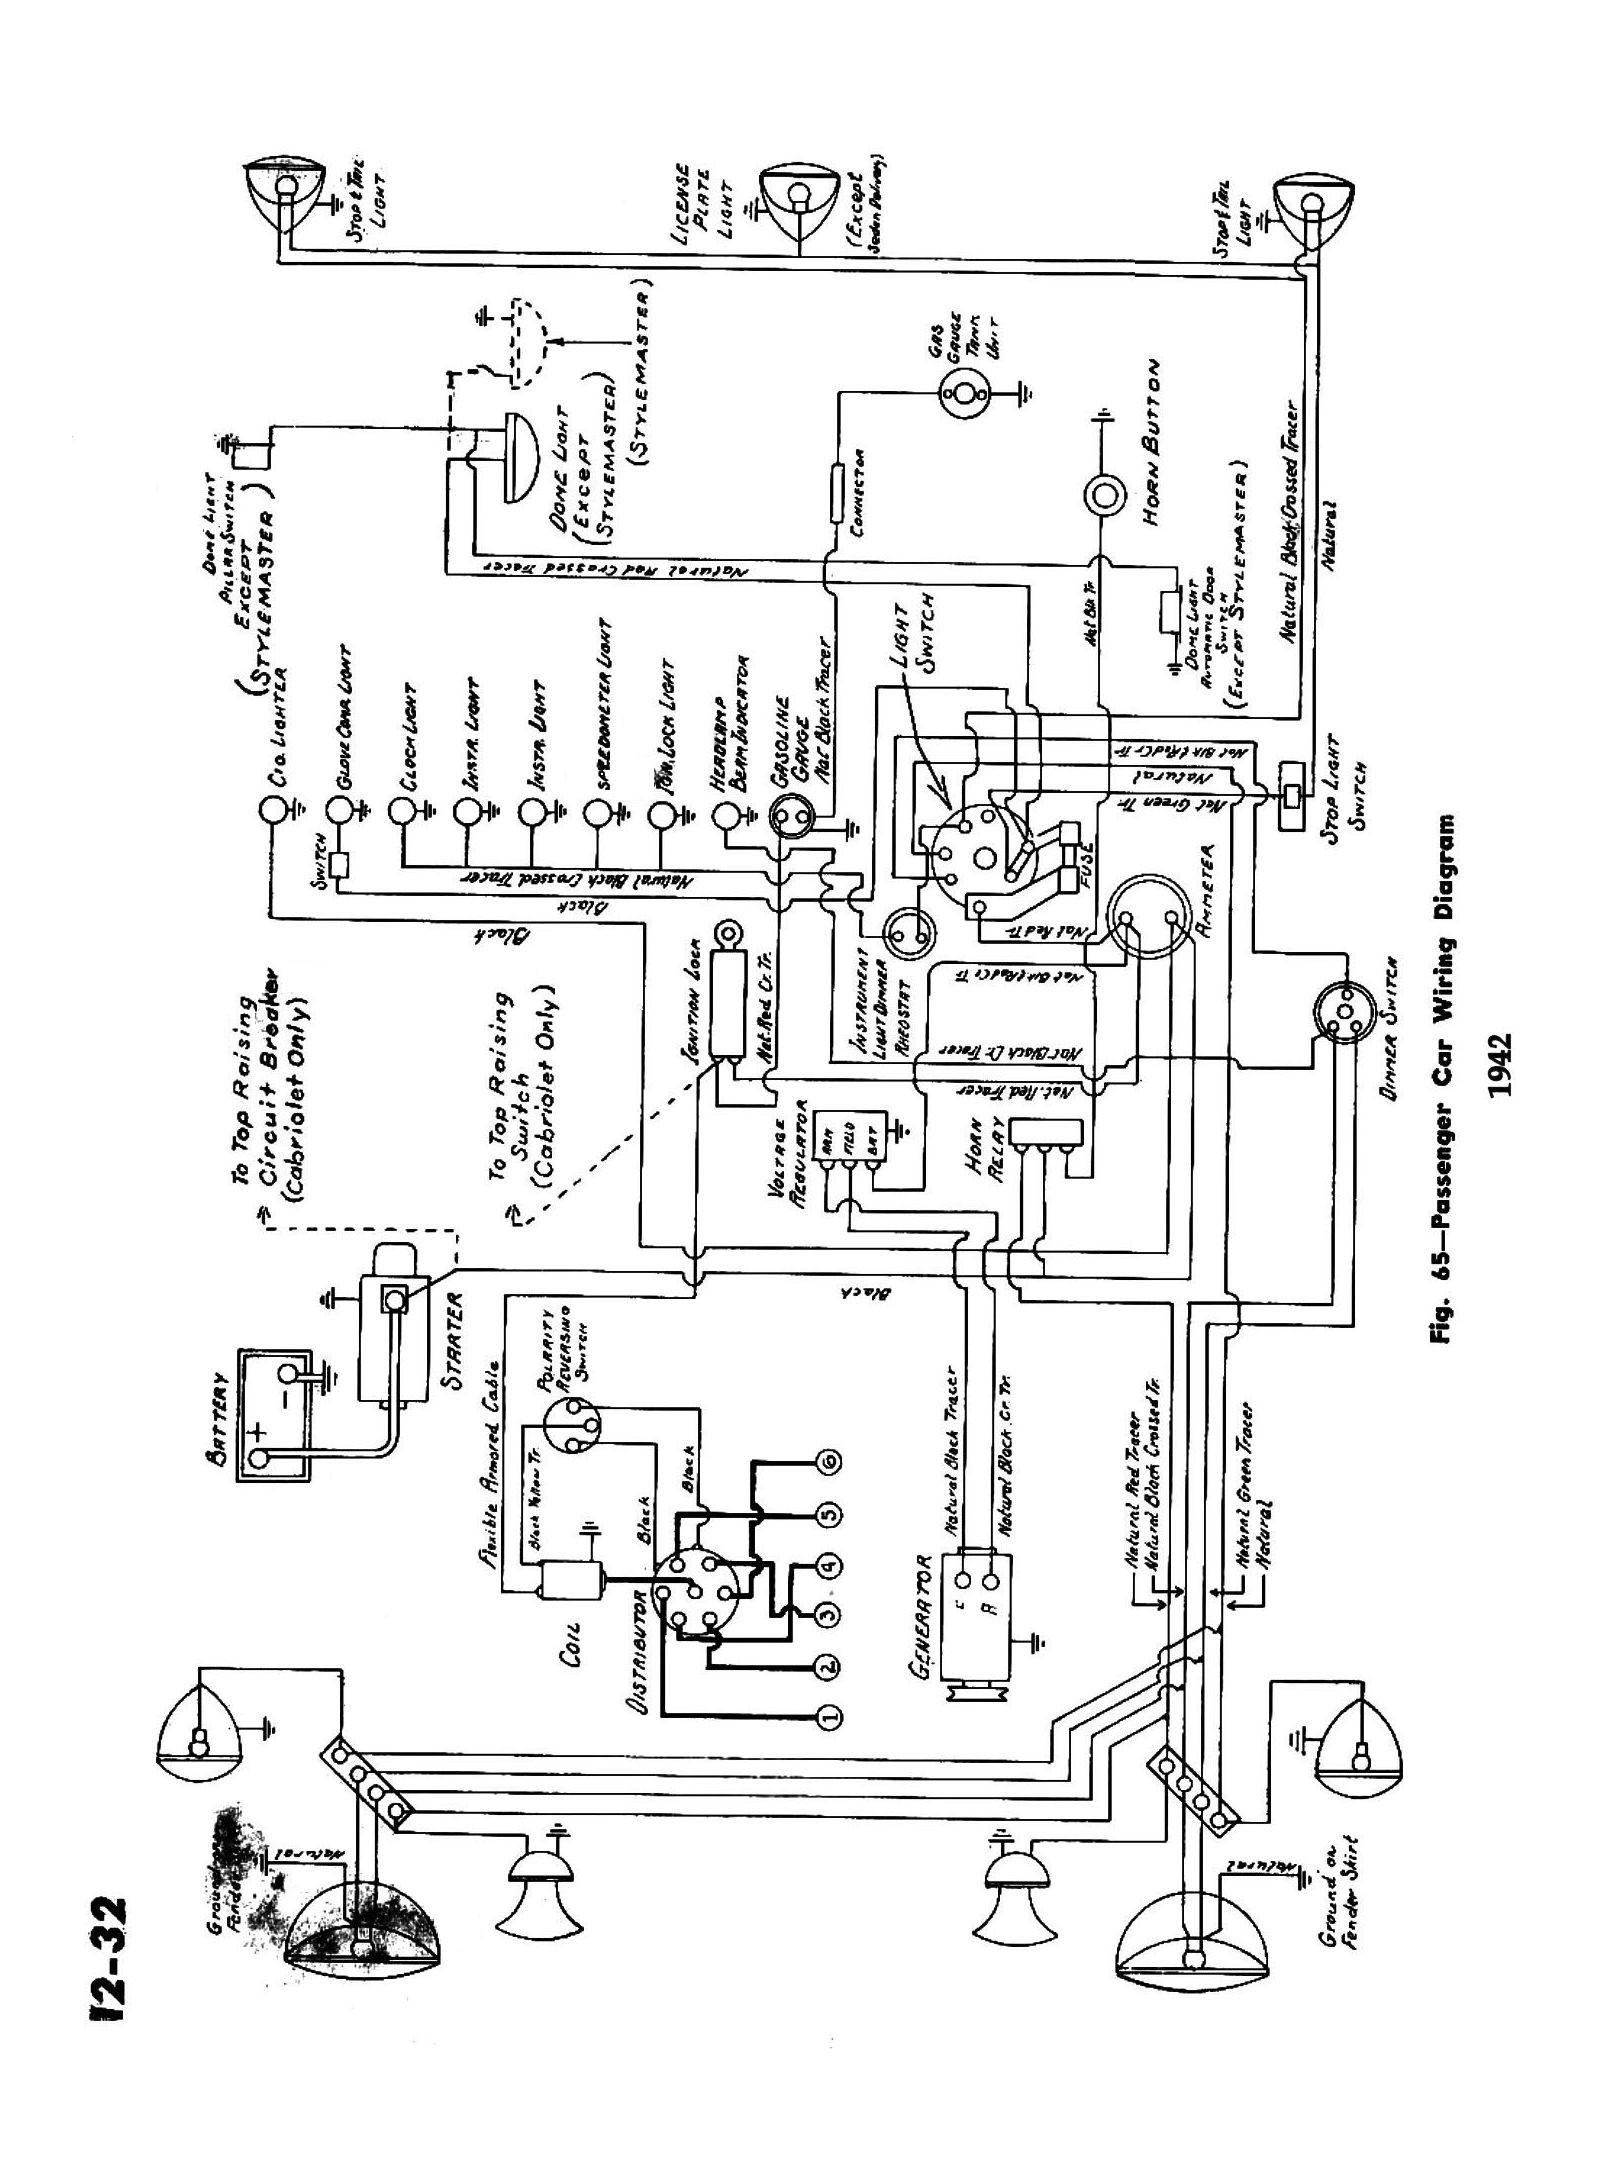 hight resolution of 1940 dodge wiring diagram wiring diagram portal rh 16 16 2 kaminari music de 2011 buick